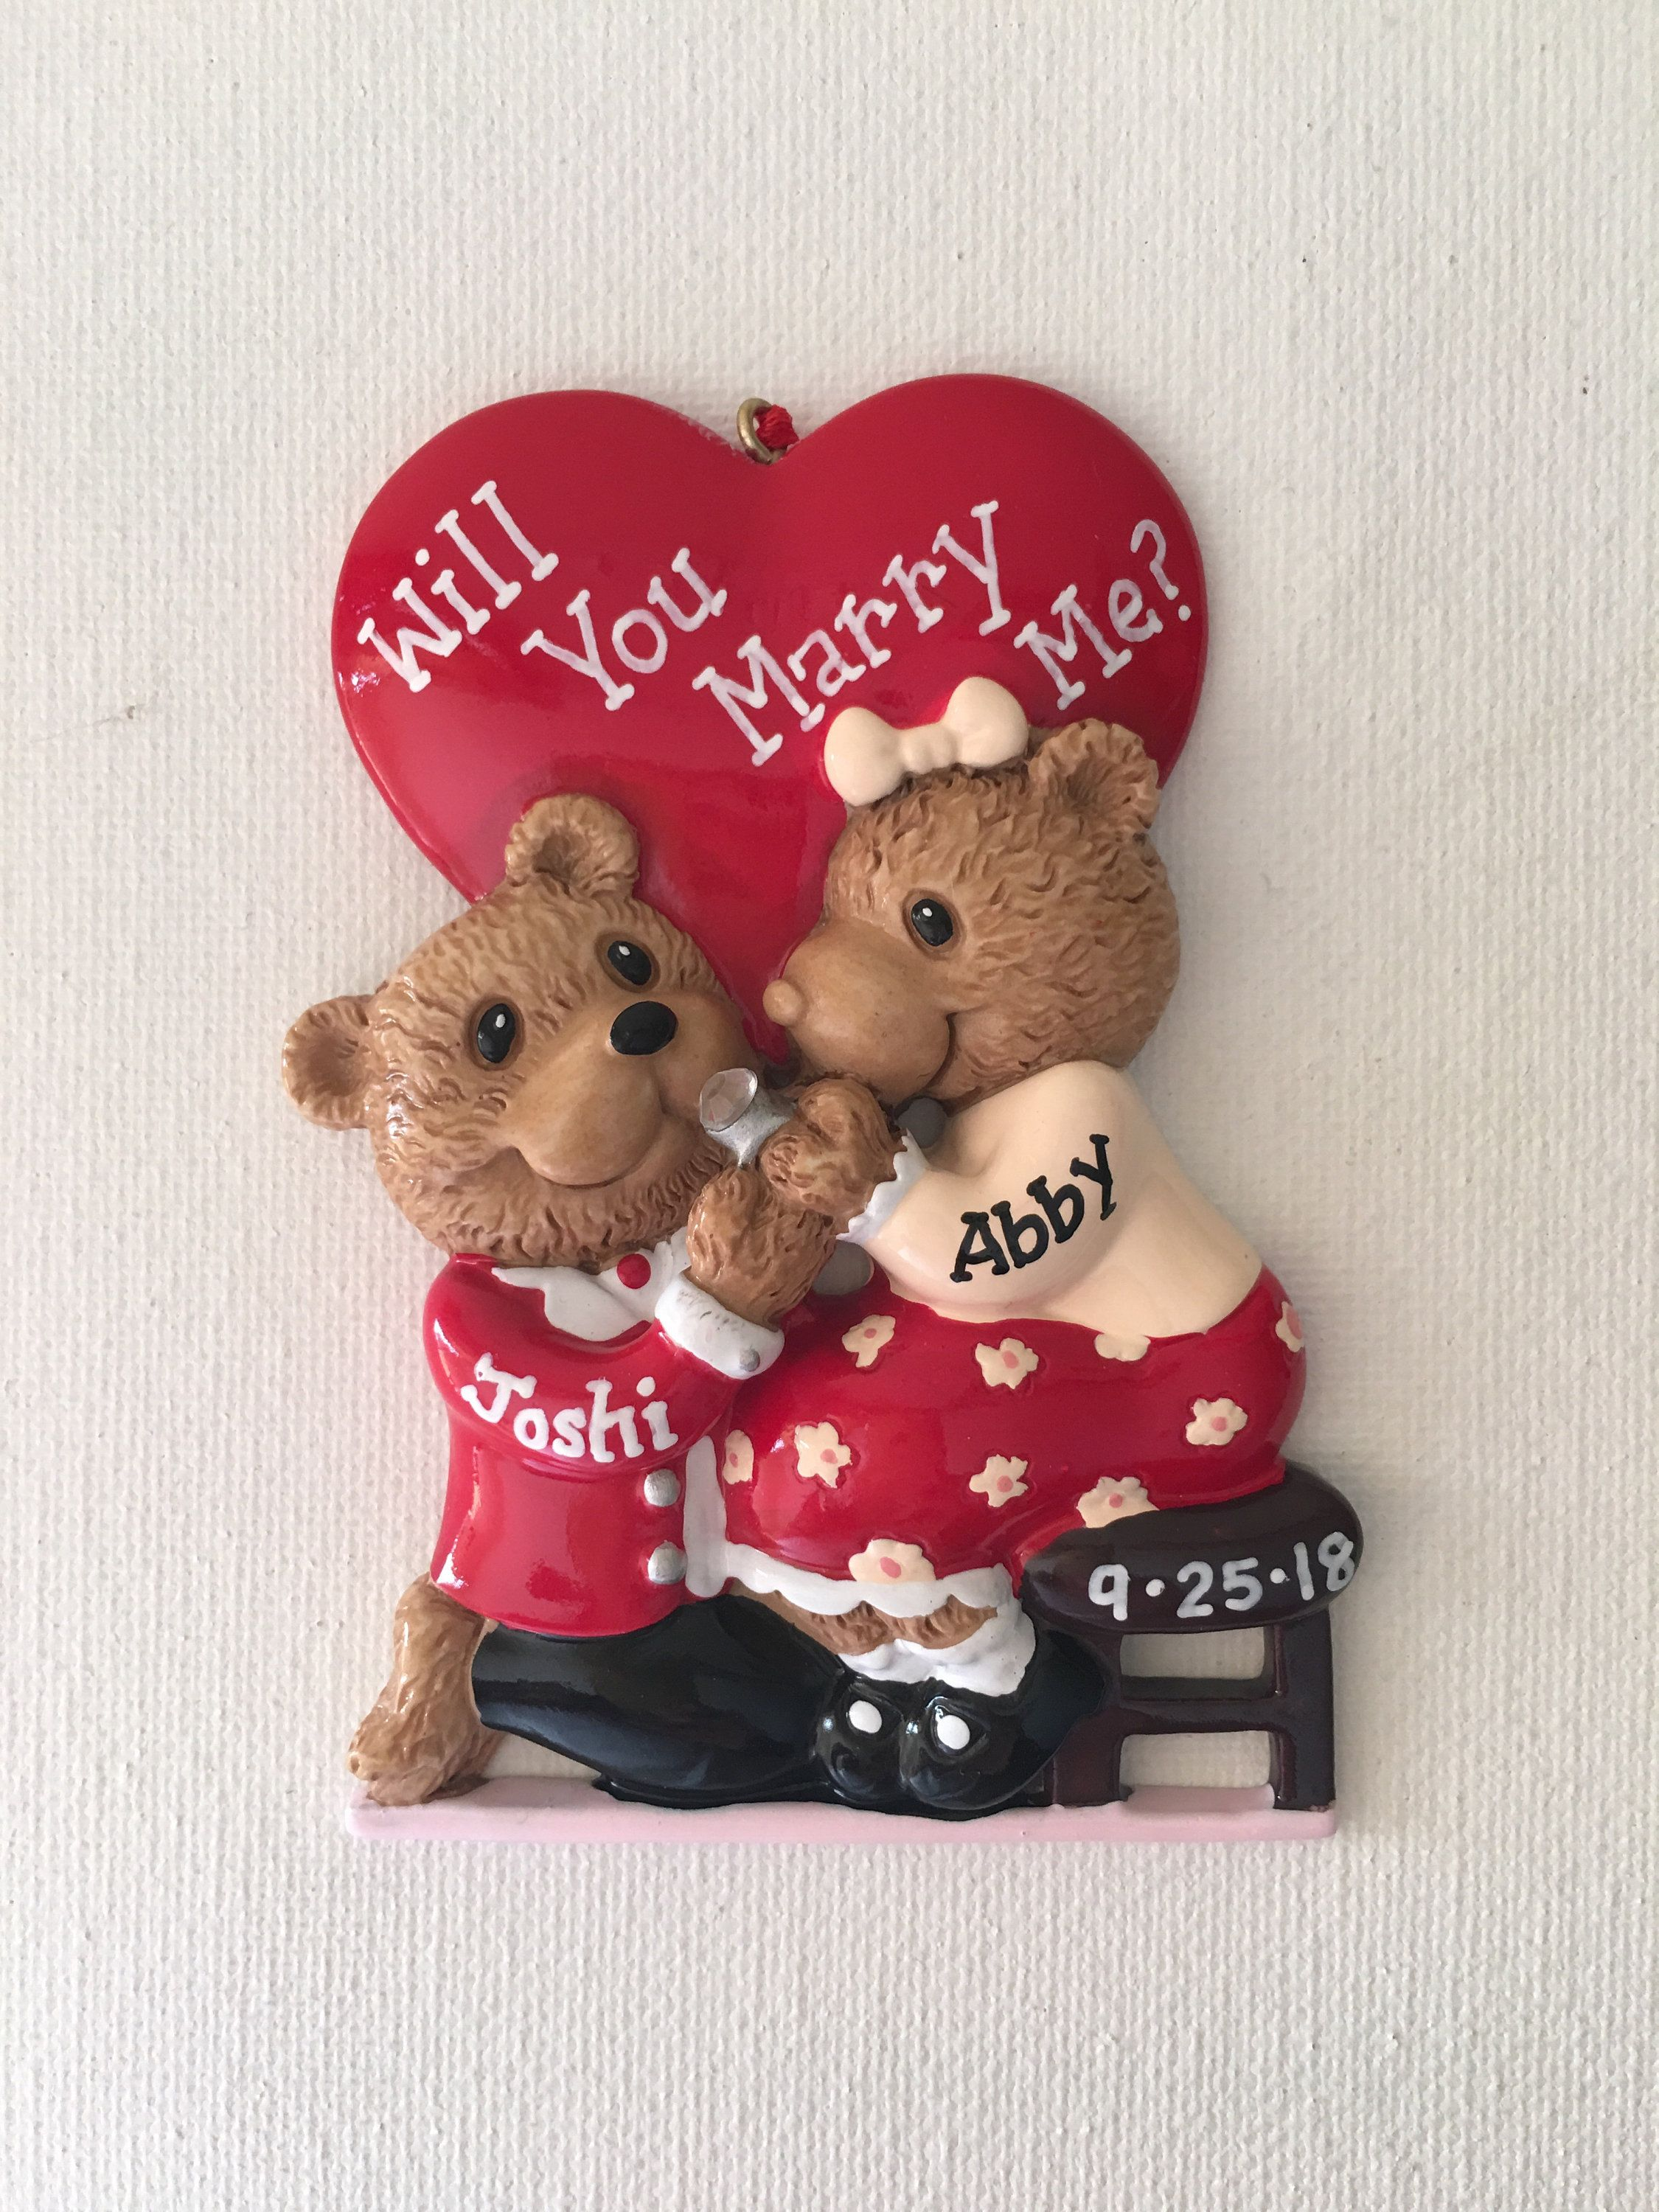 Bear couple engagement she said yes will you marry me personalized